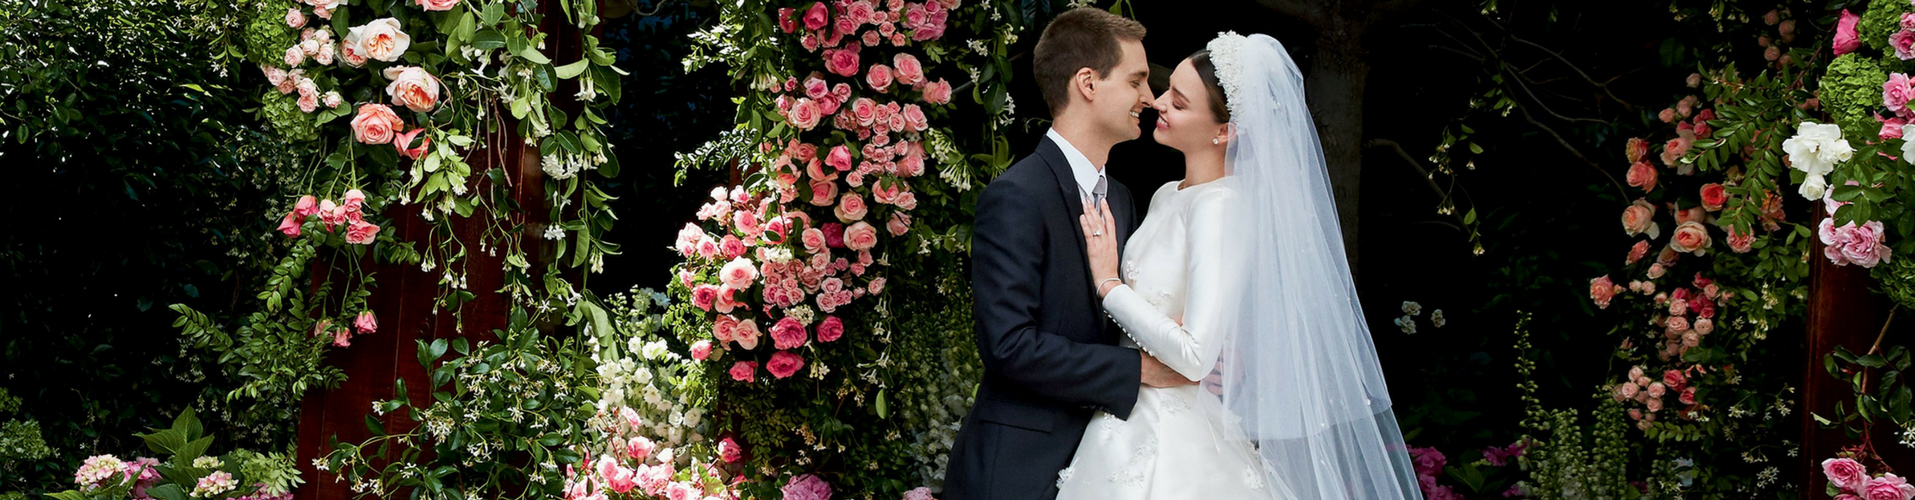 Top Trend: Grace Kelly Inspired Wedding Gowns | Wedding Journal